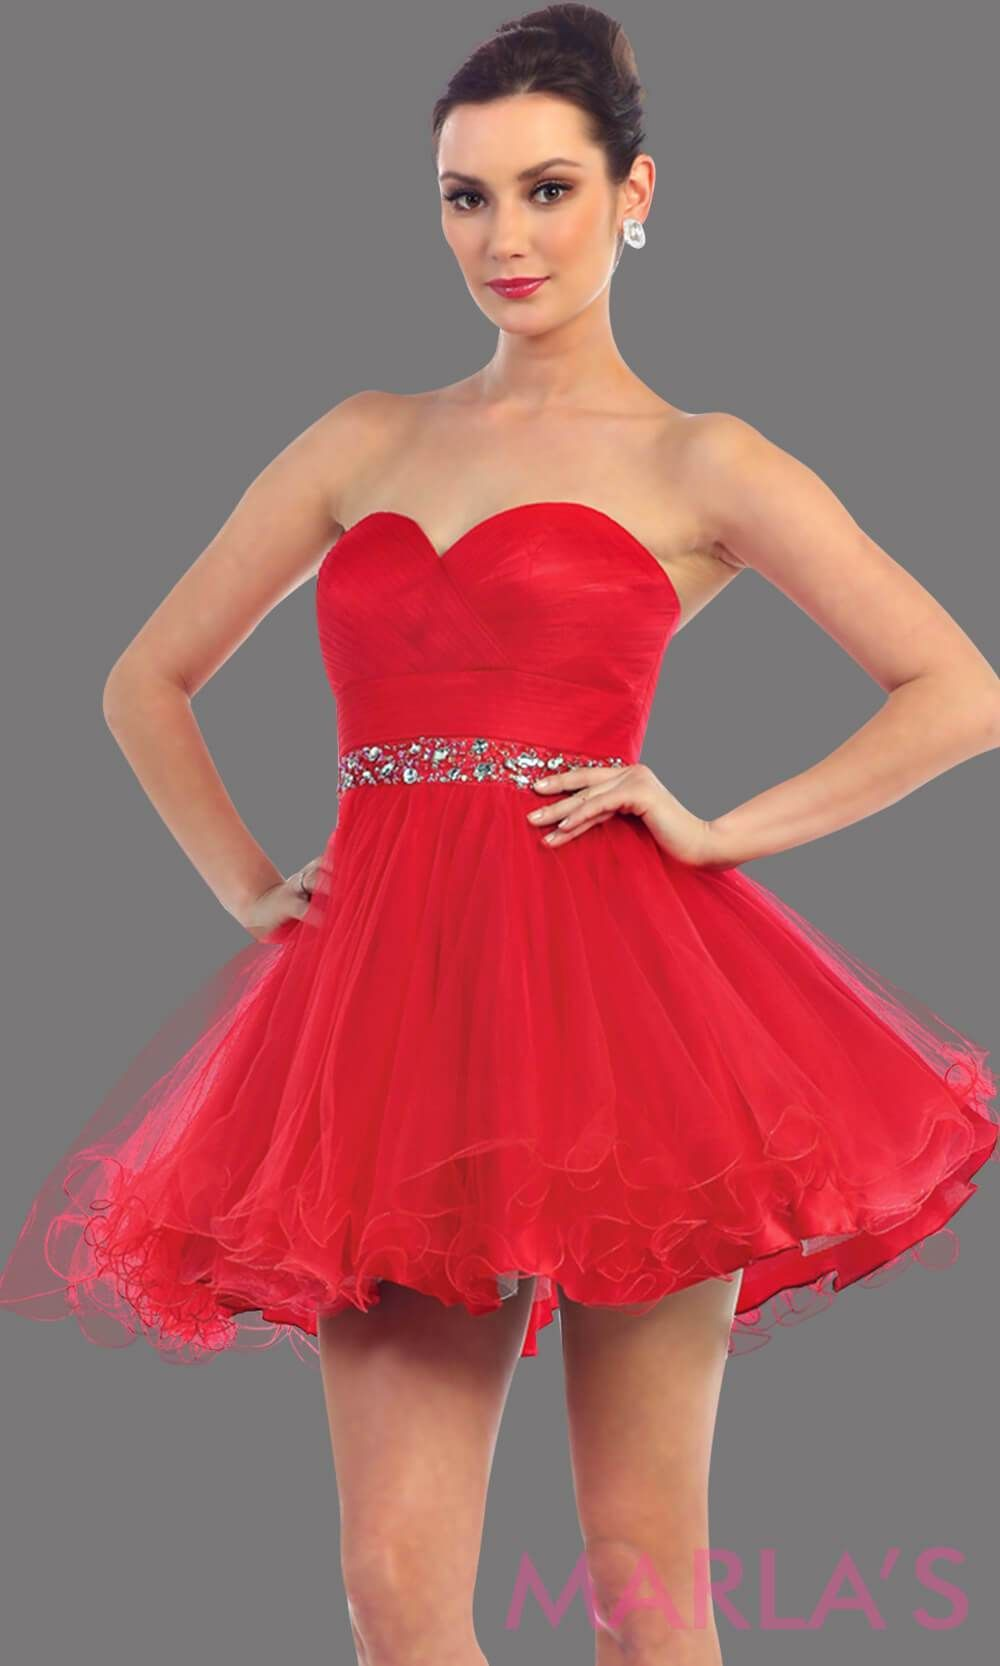 01d14cf7e3a9 Short strapless puffy red dress with rhinestone belt. It has a corset back.  This